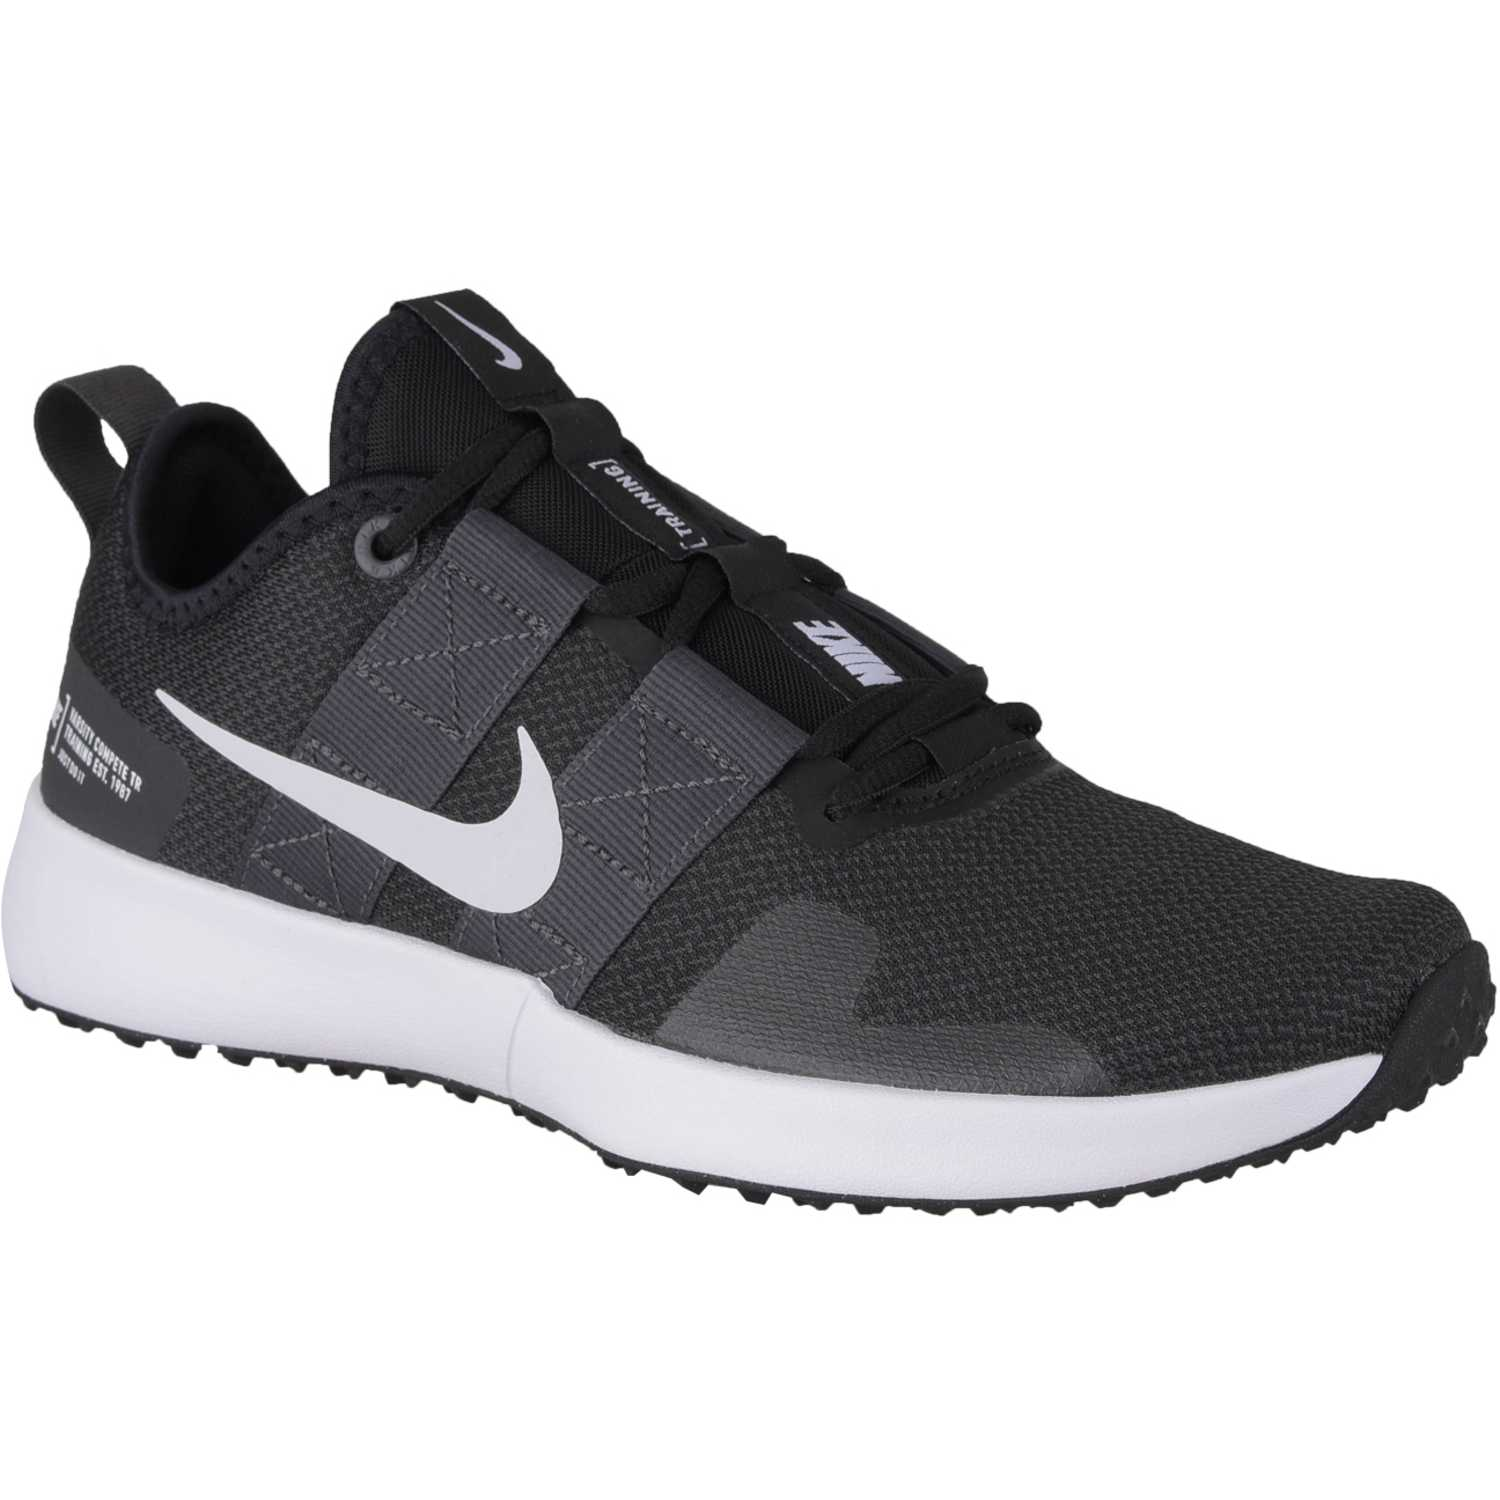 Nike Nike Varsity Compete Tr 2 Negro / blanco Hombres